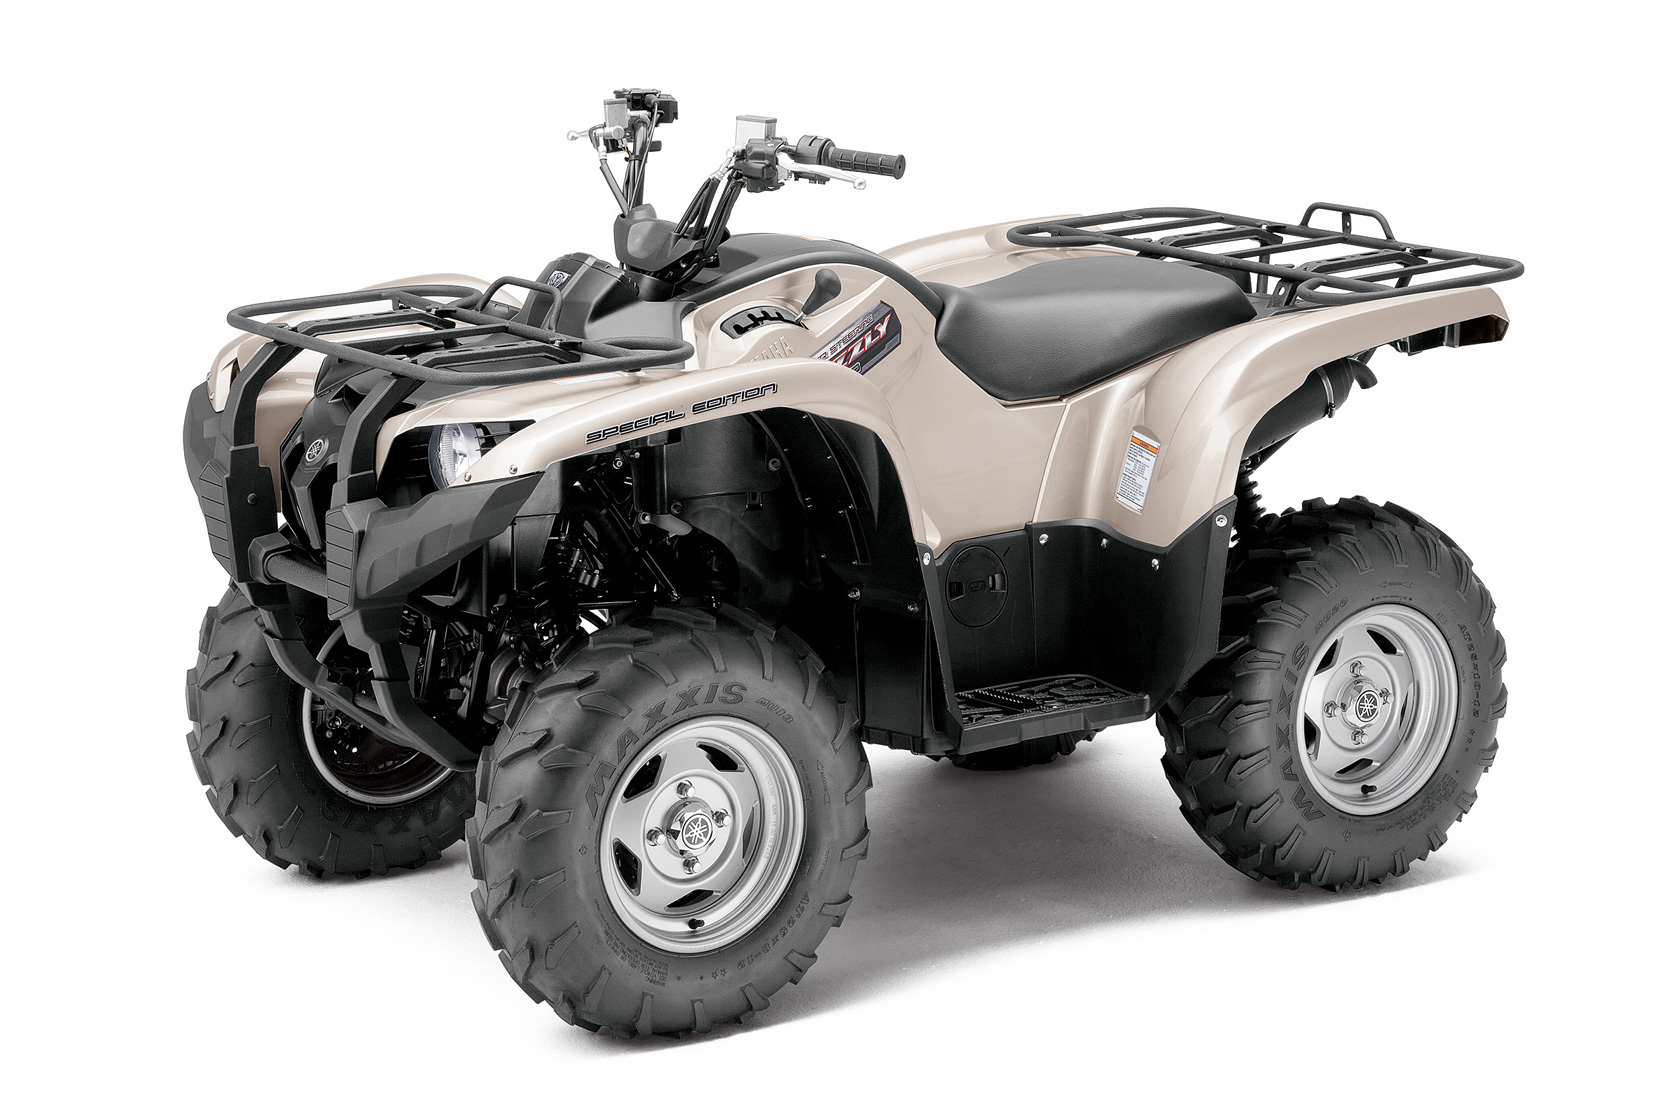 2012 yamaha grizzly 700 fi auto 4x4 eps special edition review for Yamaha grizzly atv